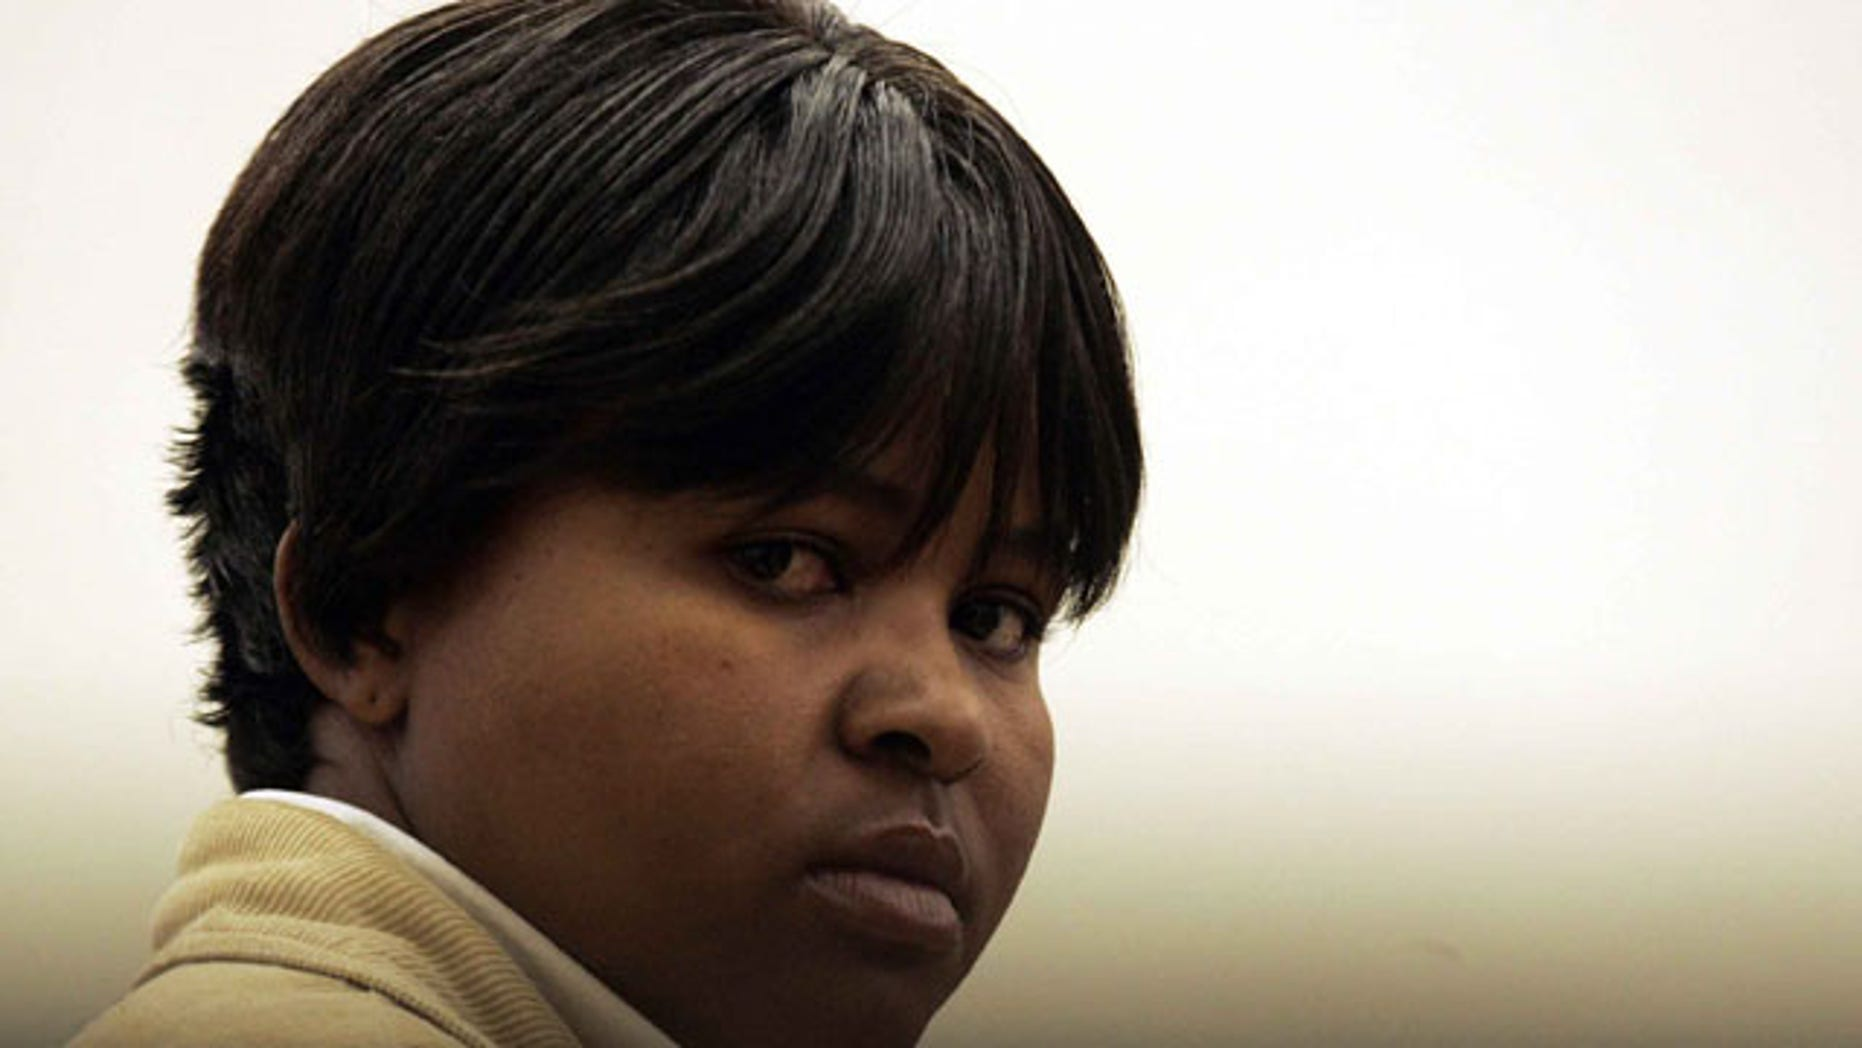 In this July 29, 2008 file photo, South African Tiny Virginia Makopo stands in the dock, at the start of a trial at the Sebokeng Magistrate Court, south of Johannesburg, South Africa.